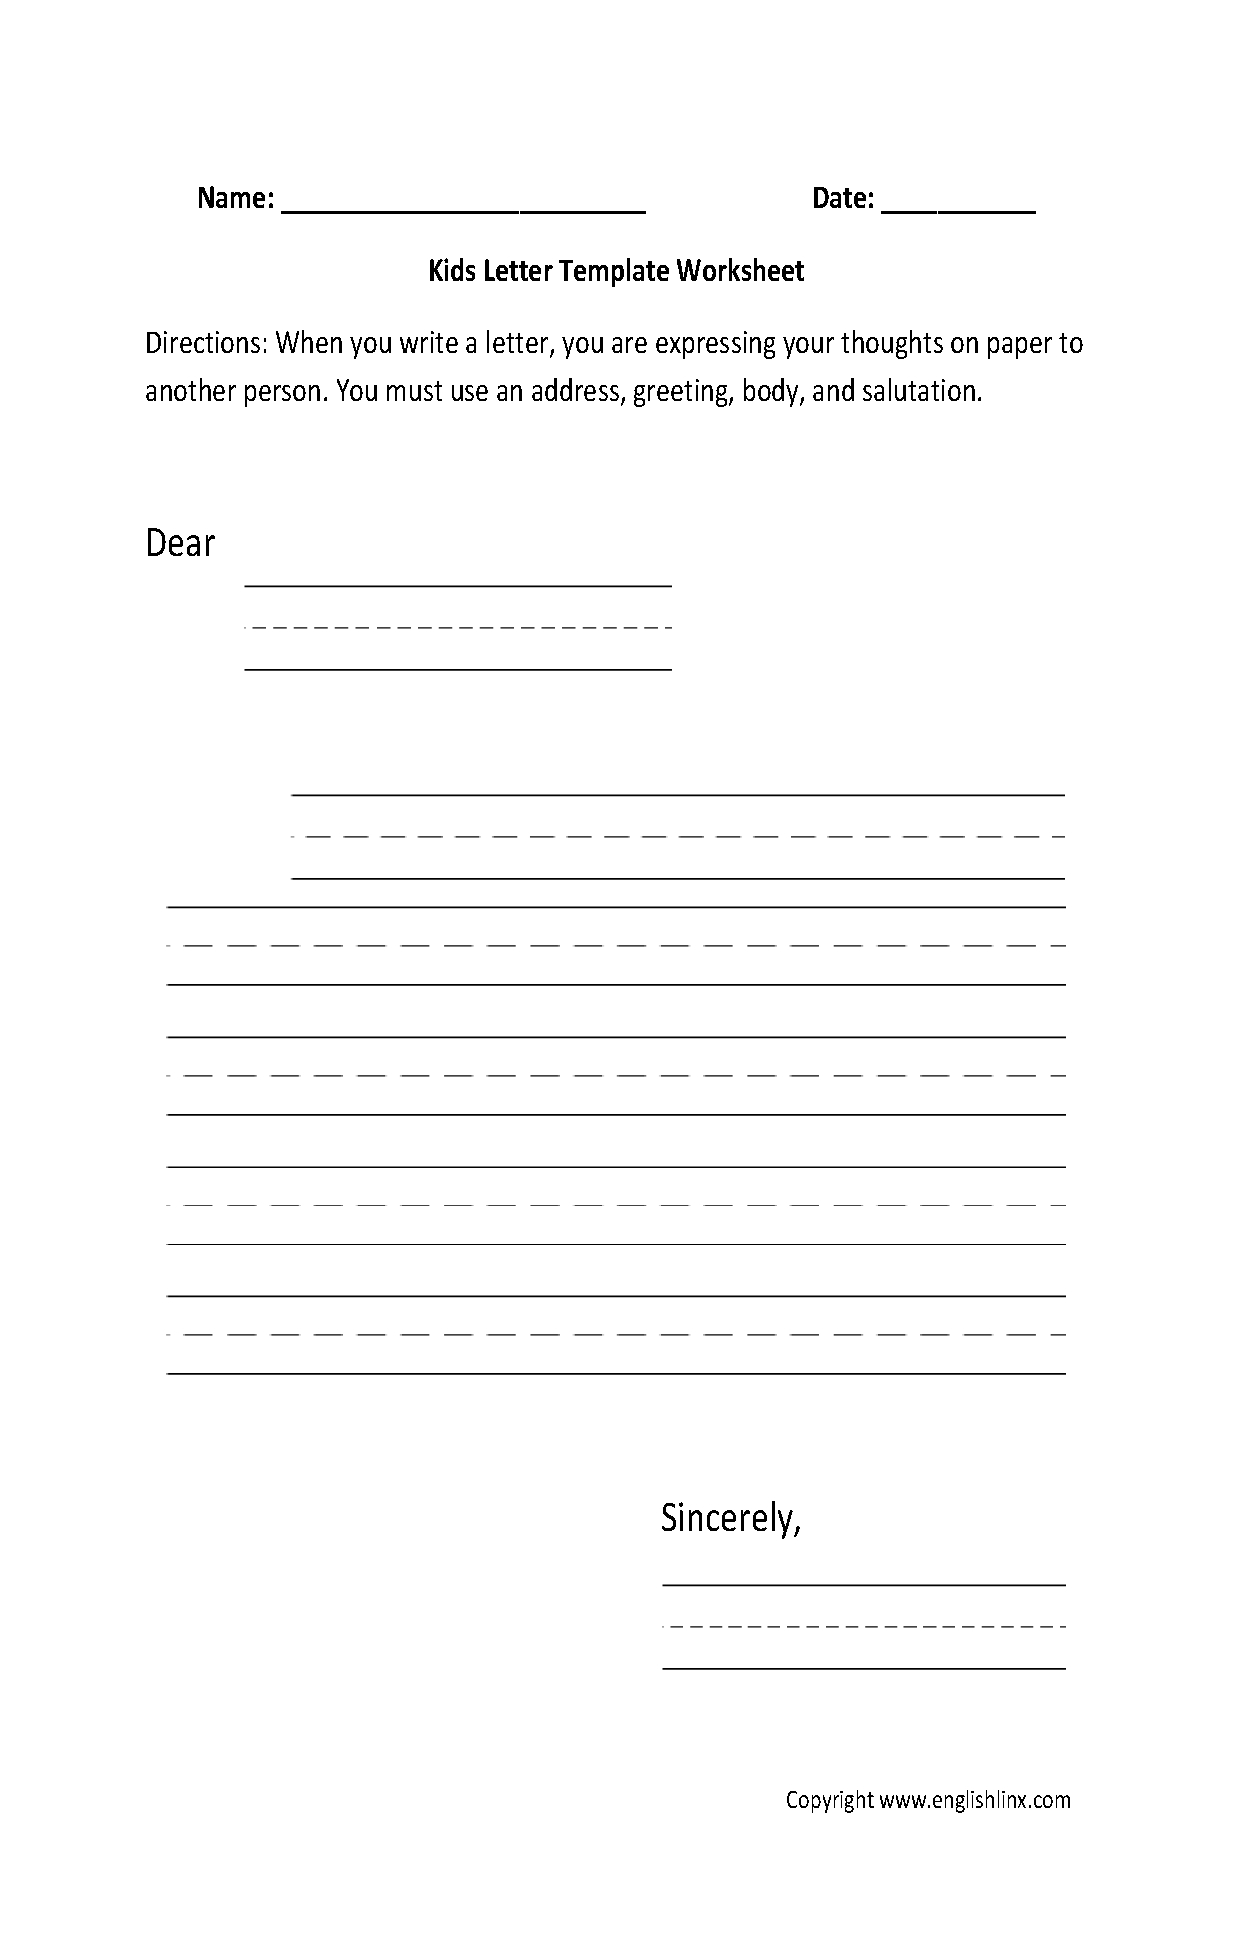 Writing Worksheets | Letter Writing Worksheets - Free Printable Letter Writing Templates